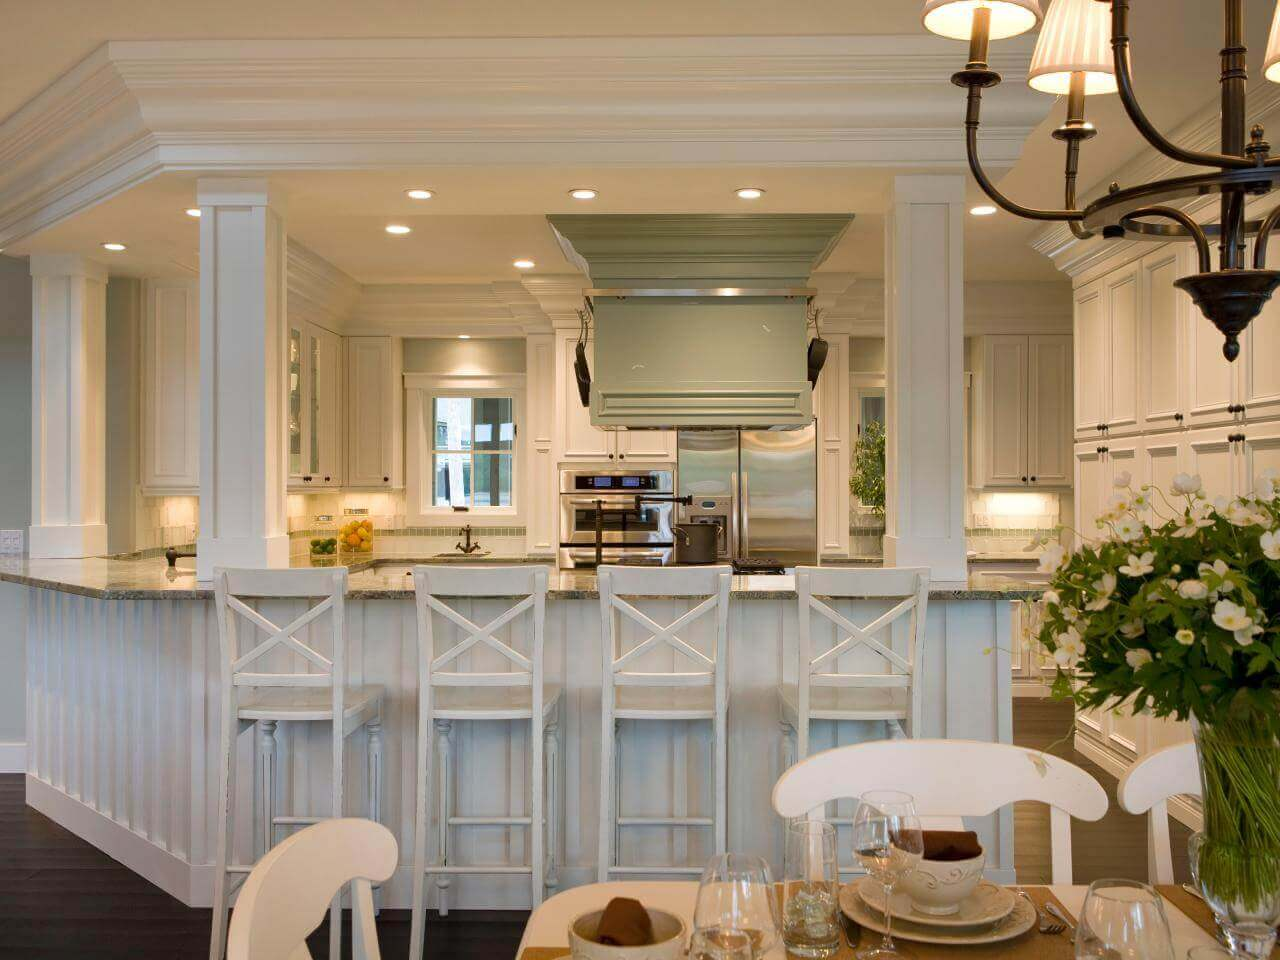 While it looks polished and modern, this white kitchen island with columns and seating for four makes a great deal of the space. Building the island with the columns ensures that wasted space is minimized